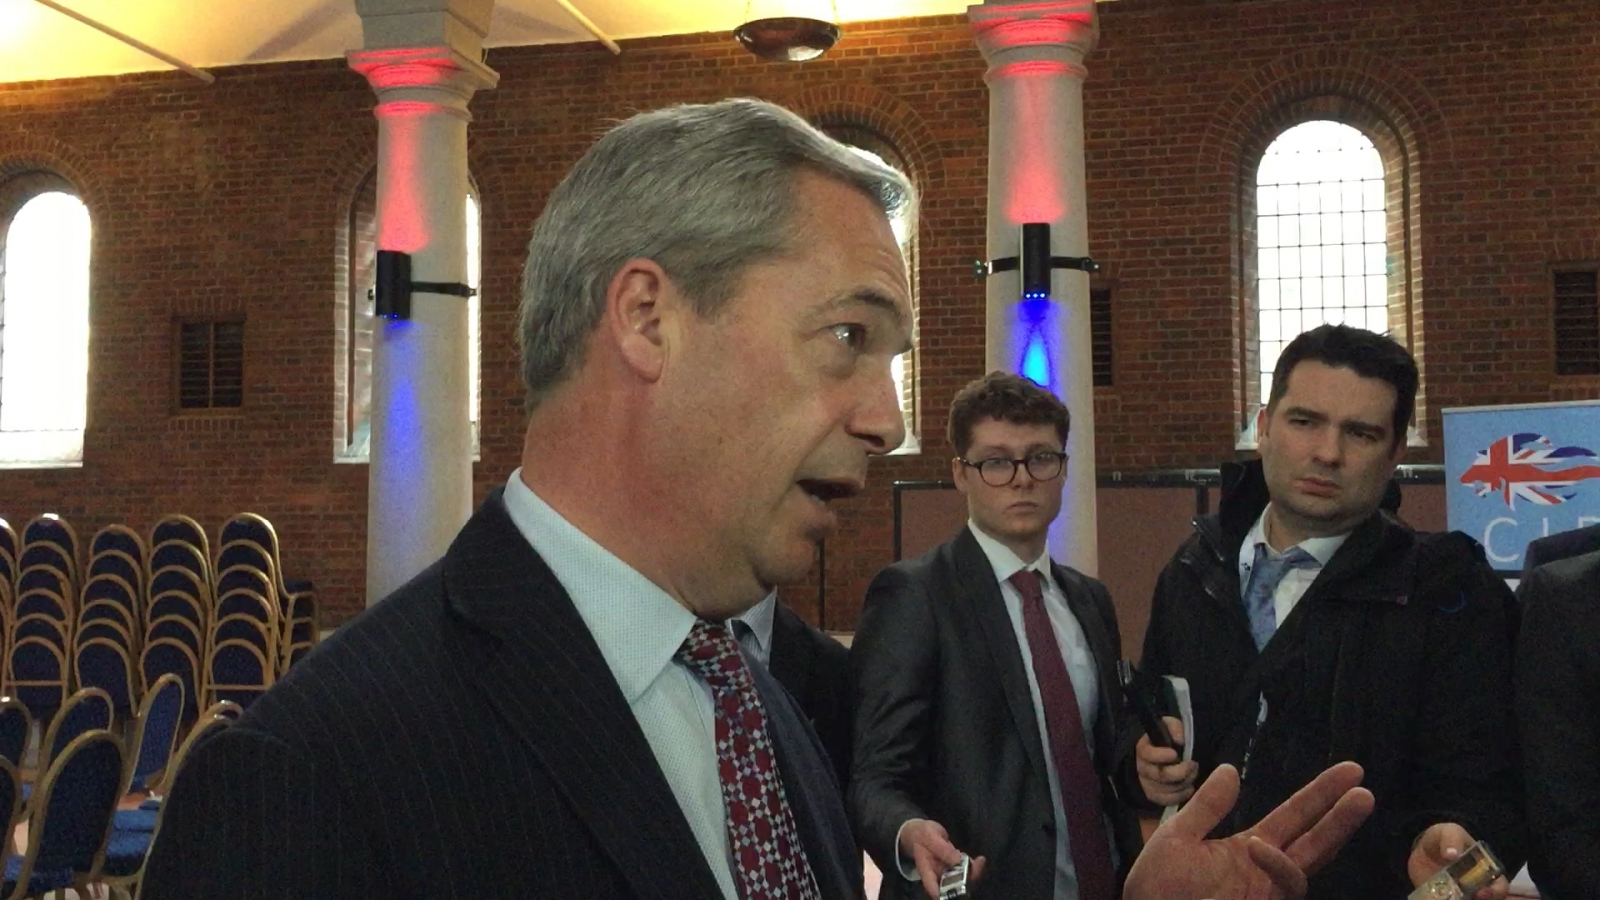 Nigel Farage renews calls for Ukip's sole MP Douglas Carswell to be removed